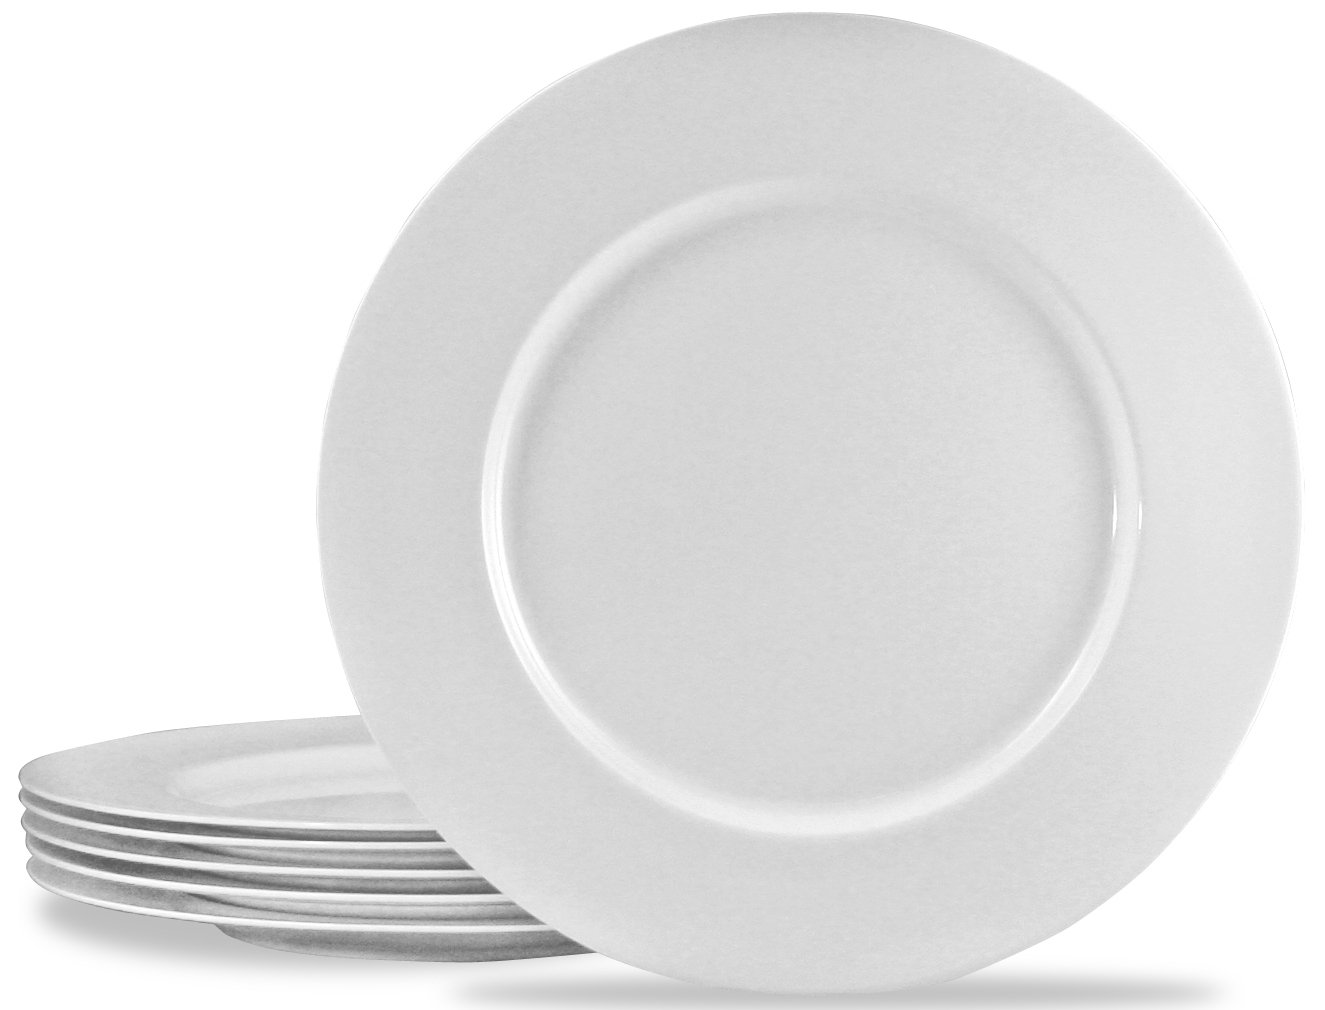 Amazon.com Calypso Basics by Reston Lloyd Melamine Salad Plate Set of 6 White Kitchen u0026 Dining  sc 1 st  Amazon.com & Amazon.com: Calypso Basics by Reston Lloyd Melamine Salad Plate Set ...